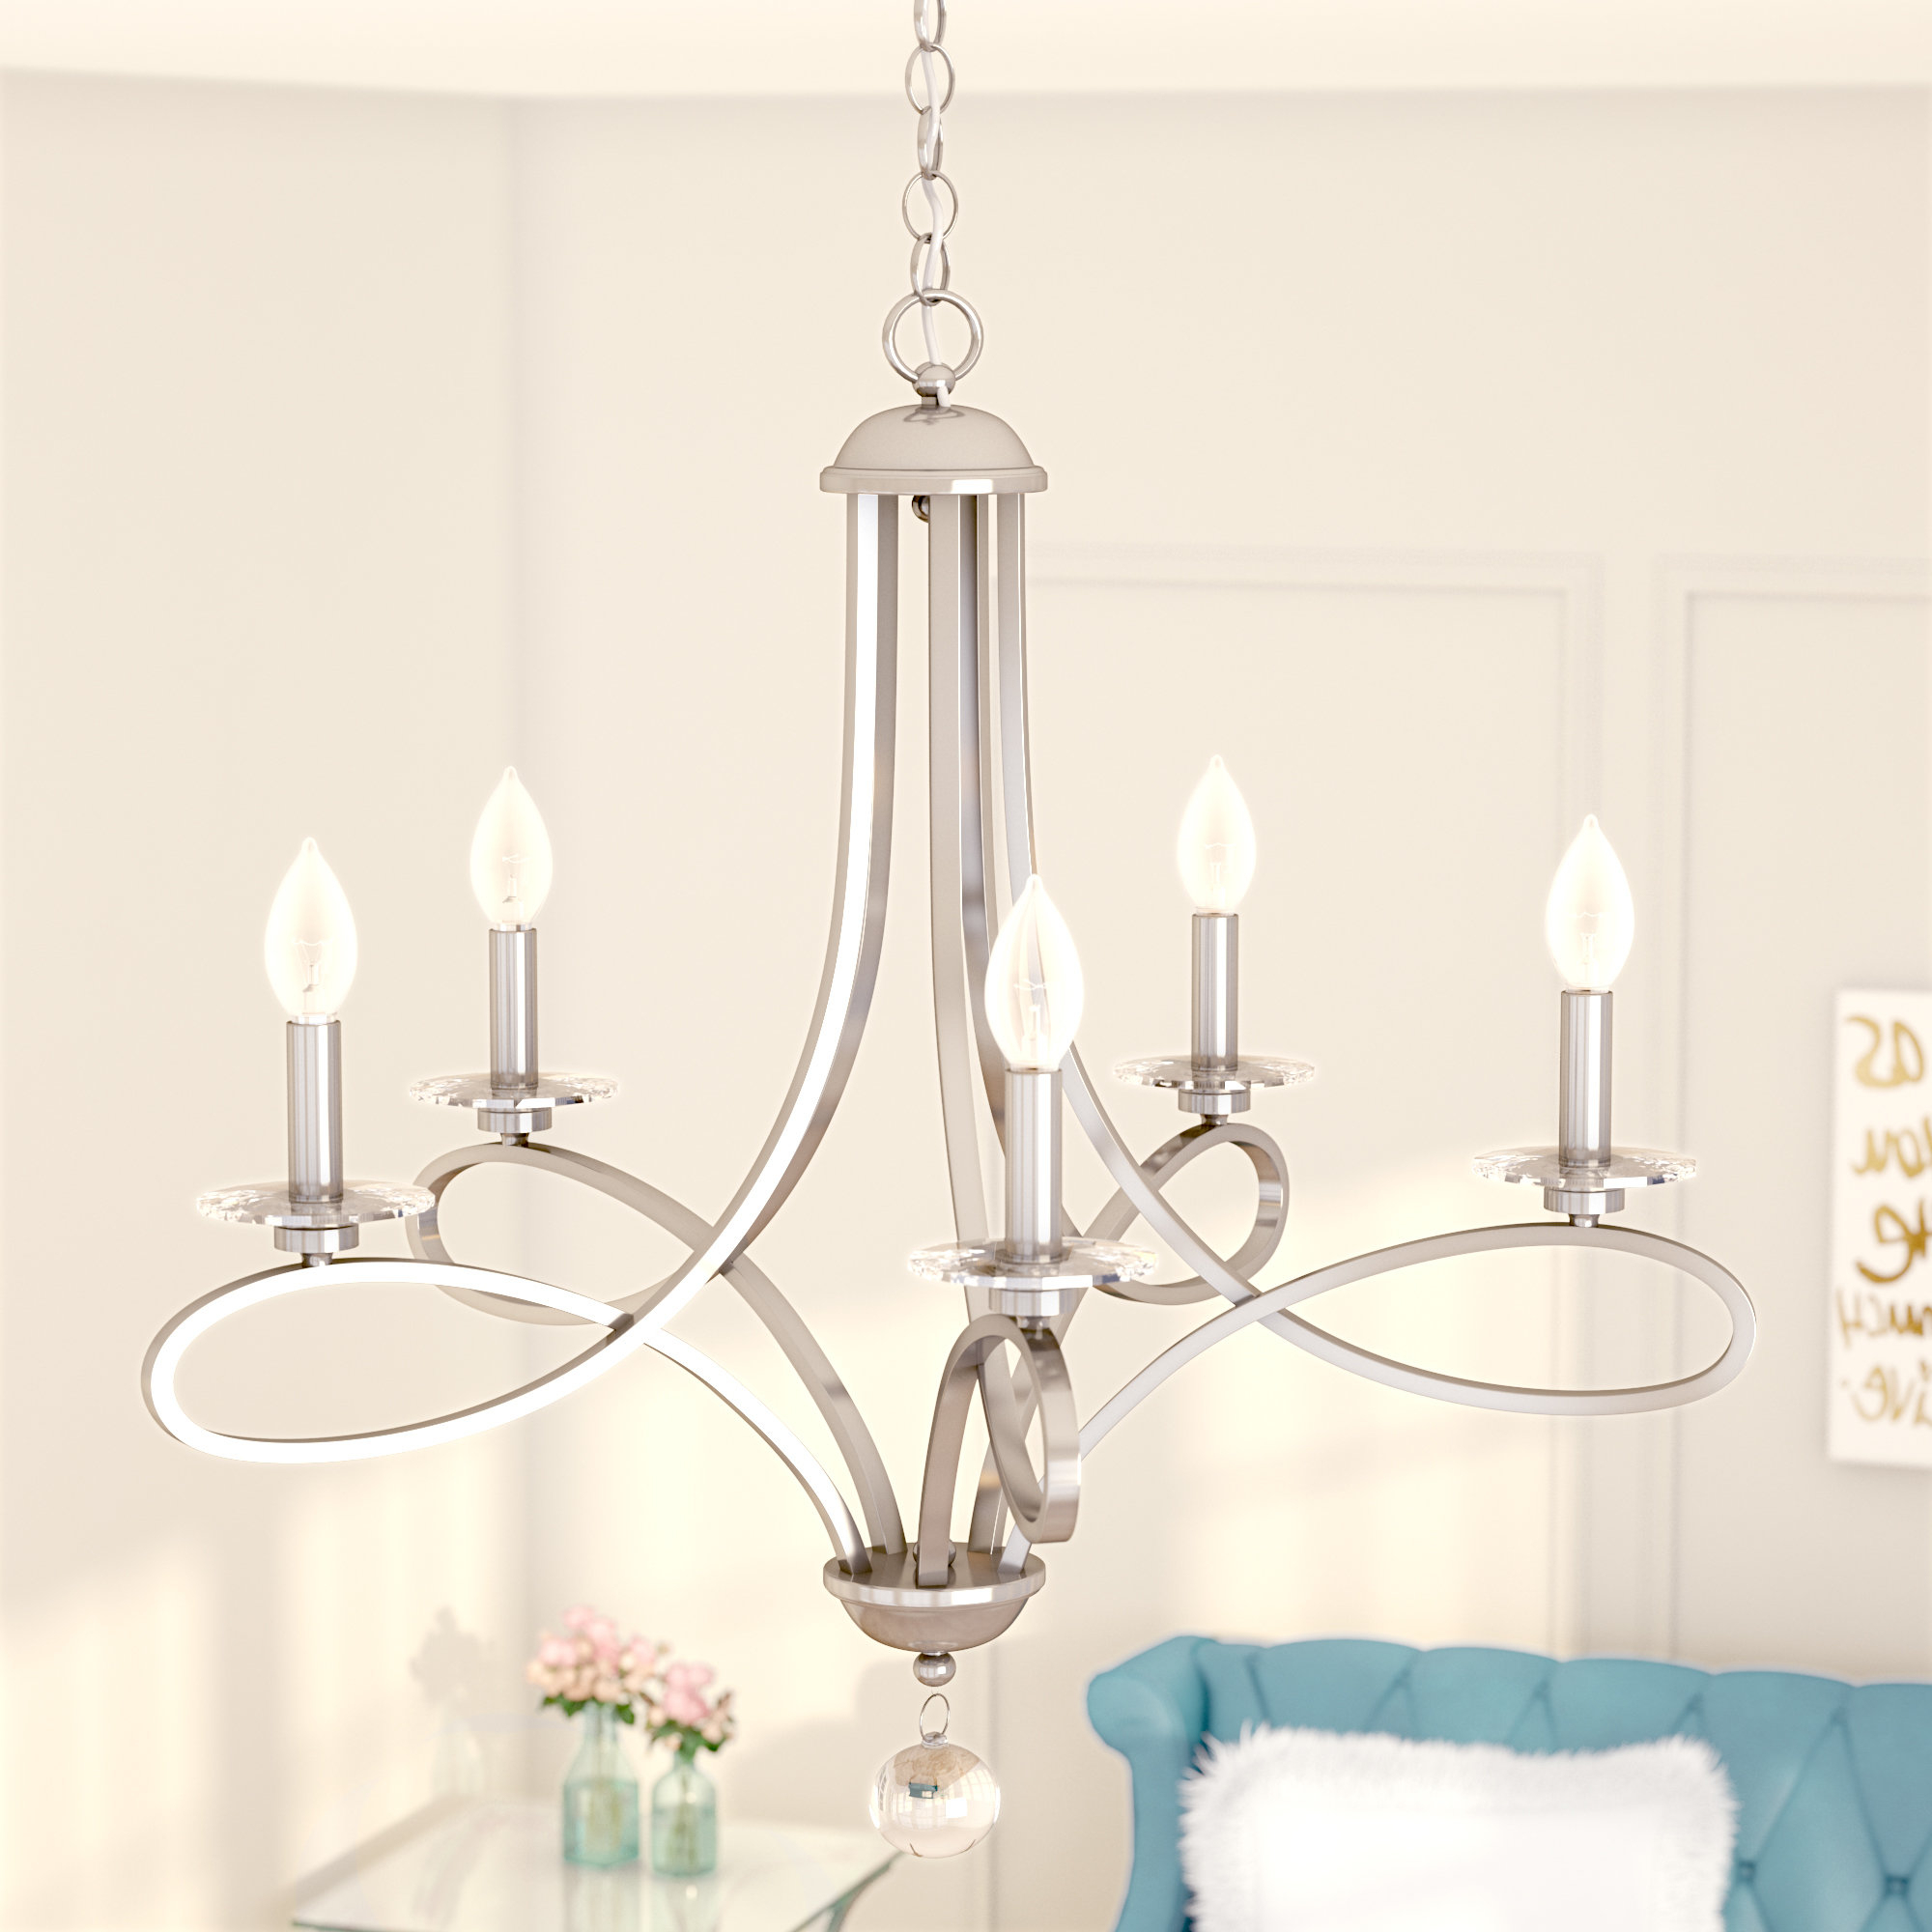 Berger 5 Light Candle Style Chandeliers For Most Up To Date Berger 5 Light Candle Style Chandelier (View 2 of 20)